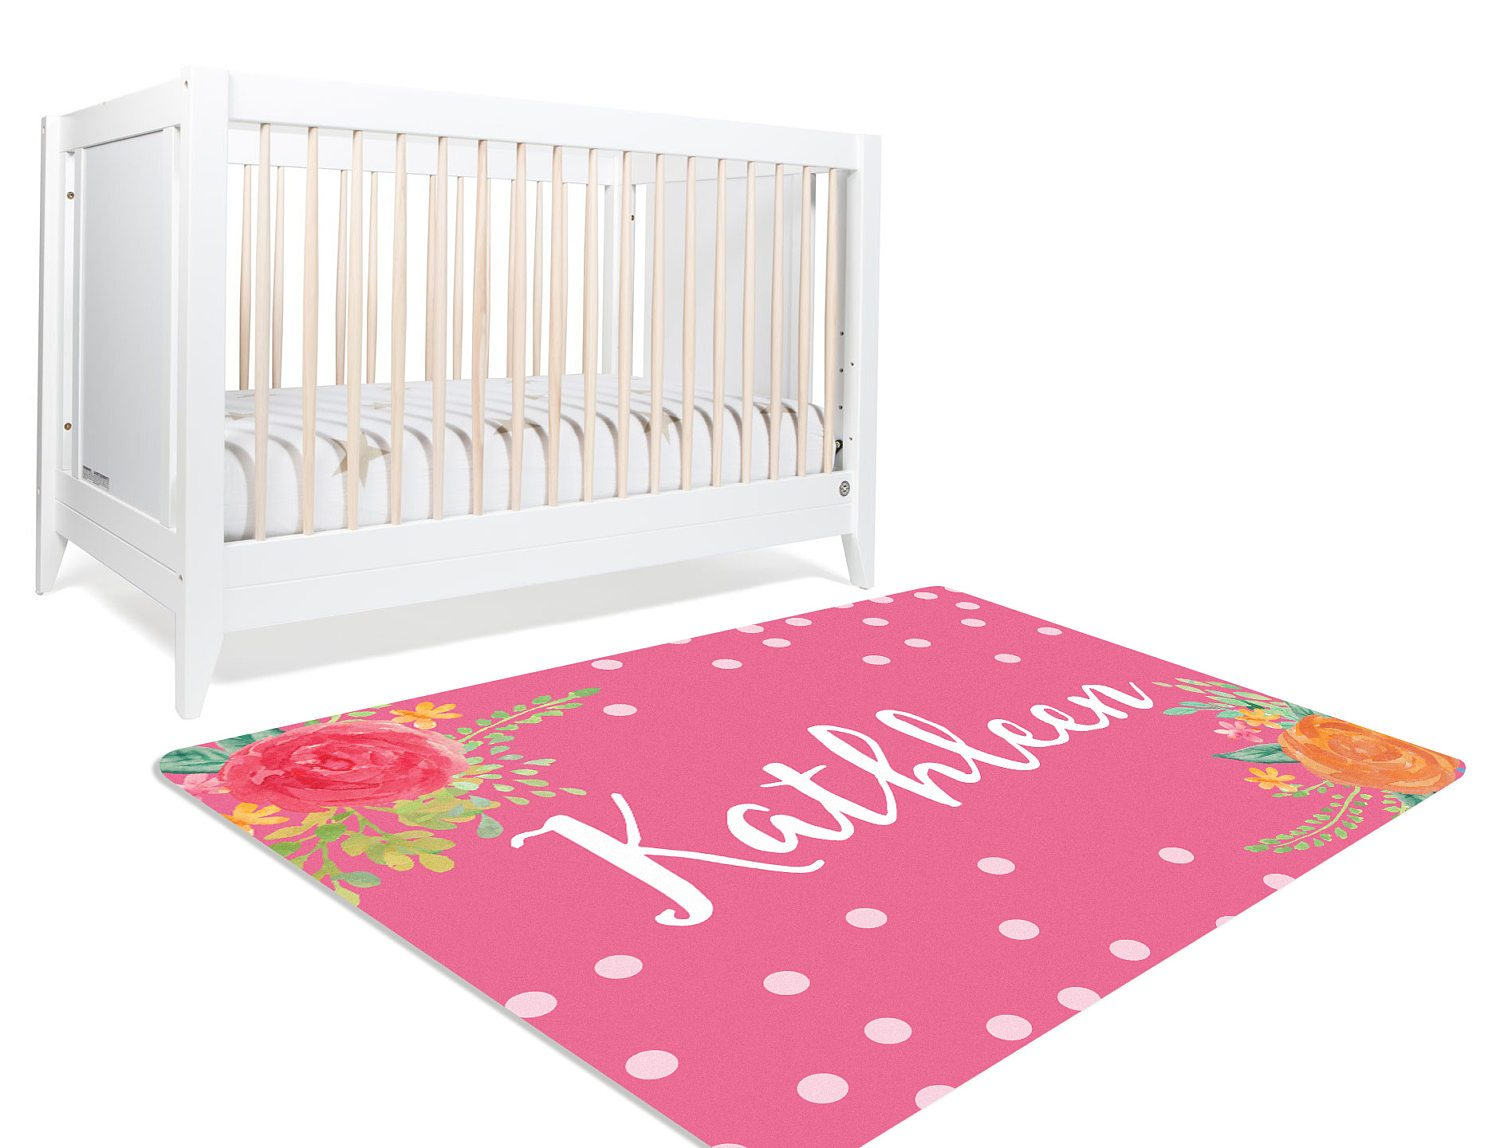 A pink floral nursery rug with white polka dots strewn around and a bunch of flowers on two diagonally opposite corners of the rug. It is customized to the name of your child. Perfect for a floral themed nursery.